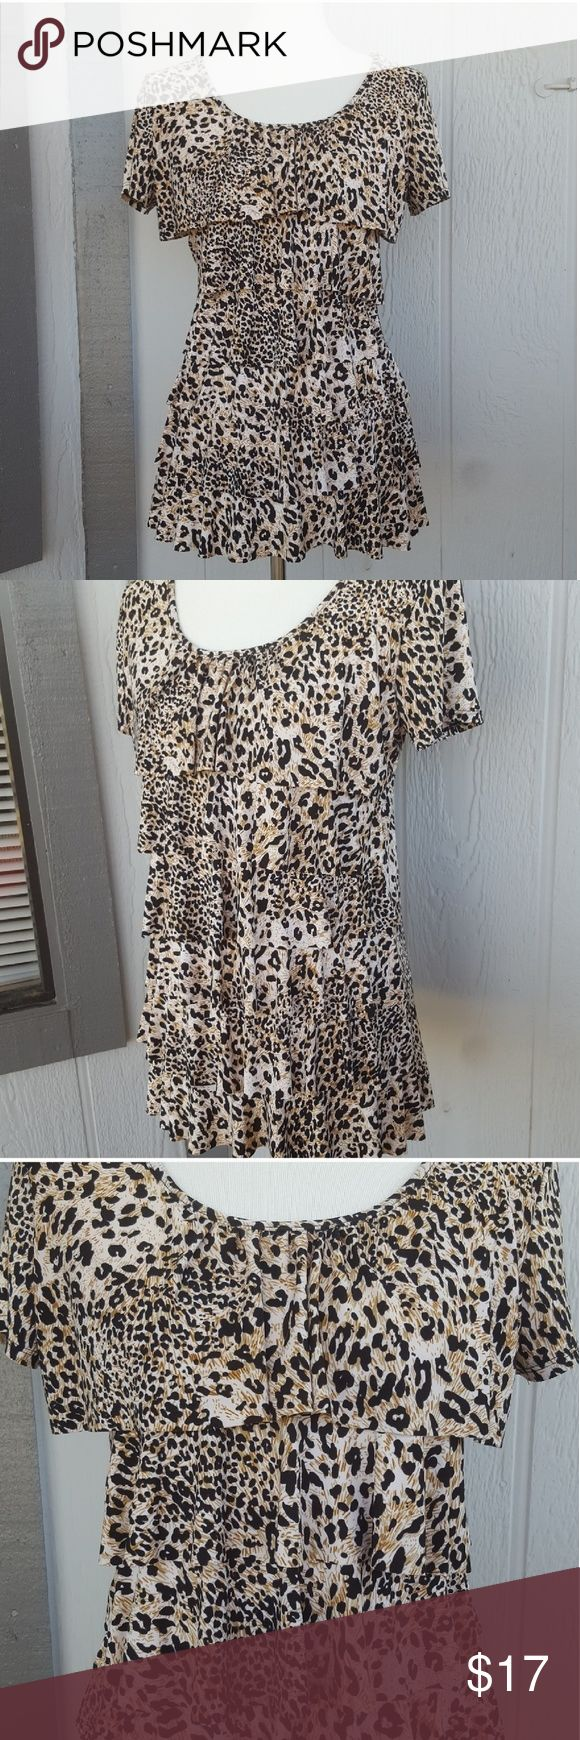 """Animal Print Cheetah Leopard Print Ruffle Blouse Short sleeve blouse in great shape. Has layers of ruffles. Stretchy and comfortable fabric. Perfect to wear with jeans or a skirt.  Polyester, spandex, elastane. Approximate measurements armpit to armpit to armpit to armpit to armpit 19"""". Length 28"""". Animal Print Cheetah Leopard Print Ruffle Blouse Andrea Missy Tops Blouses"""